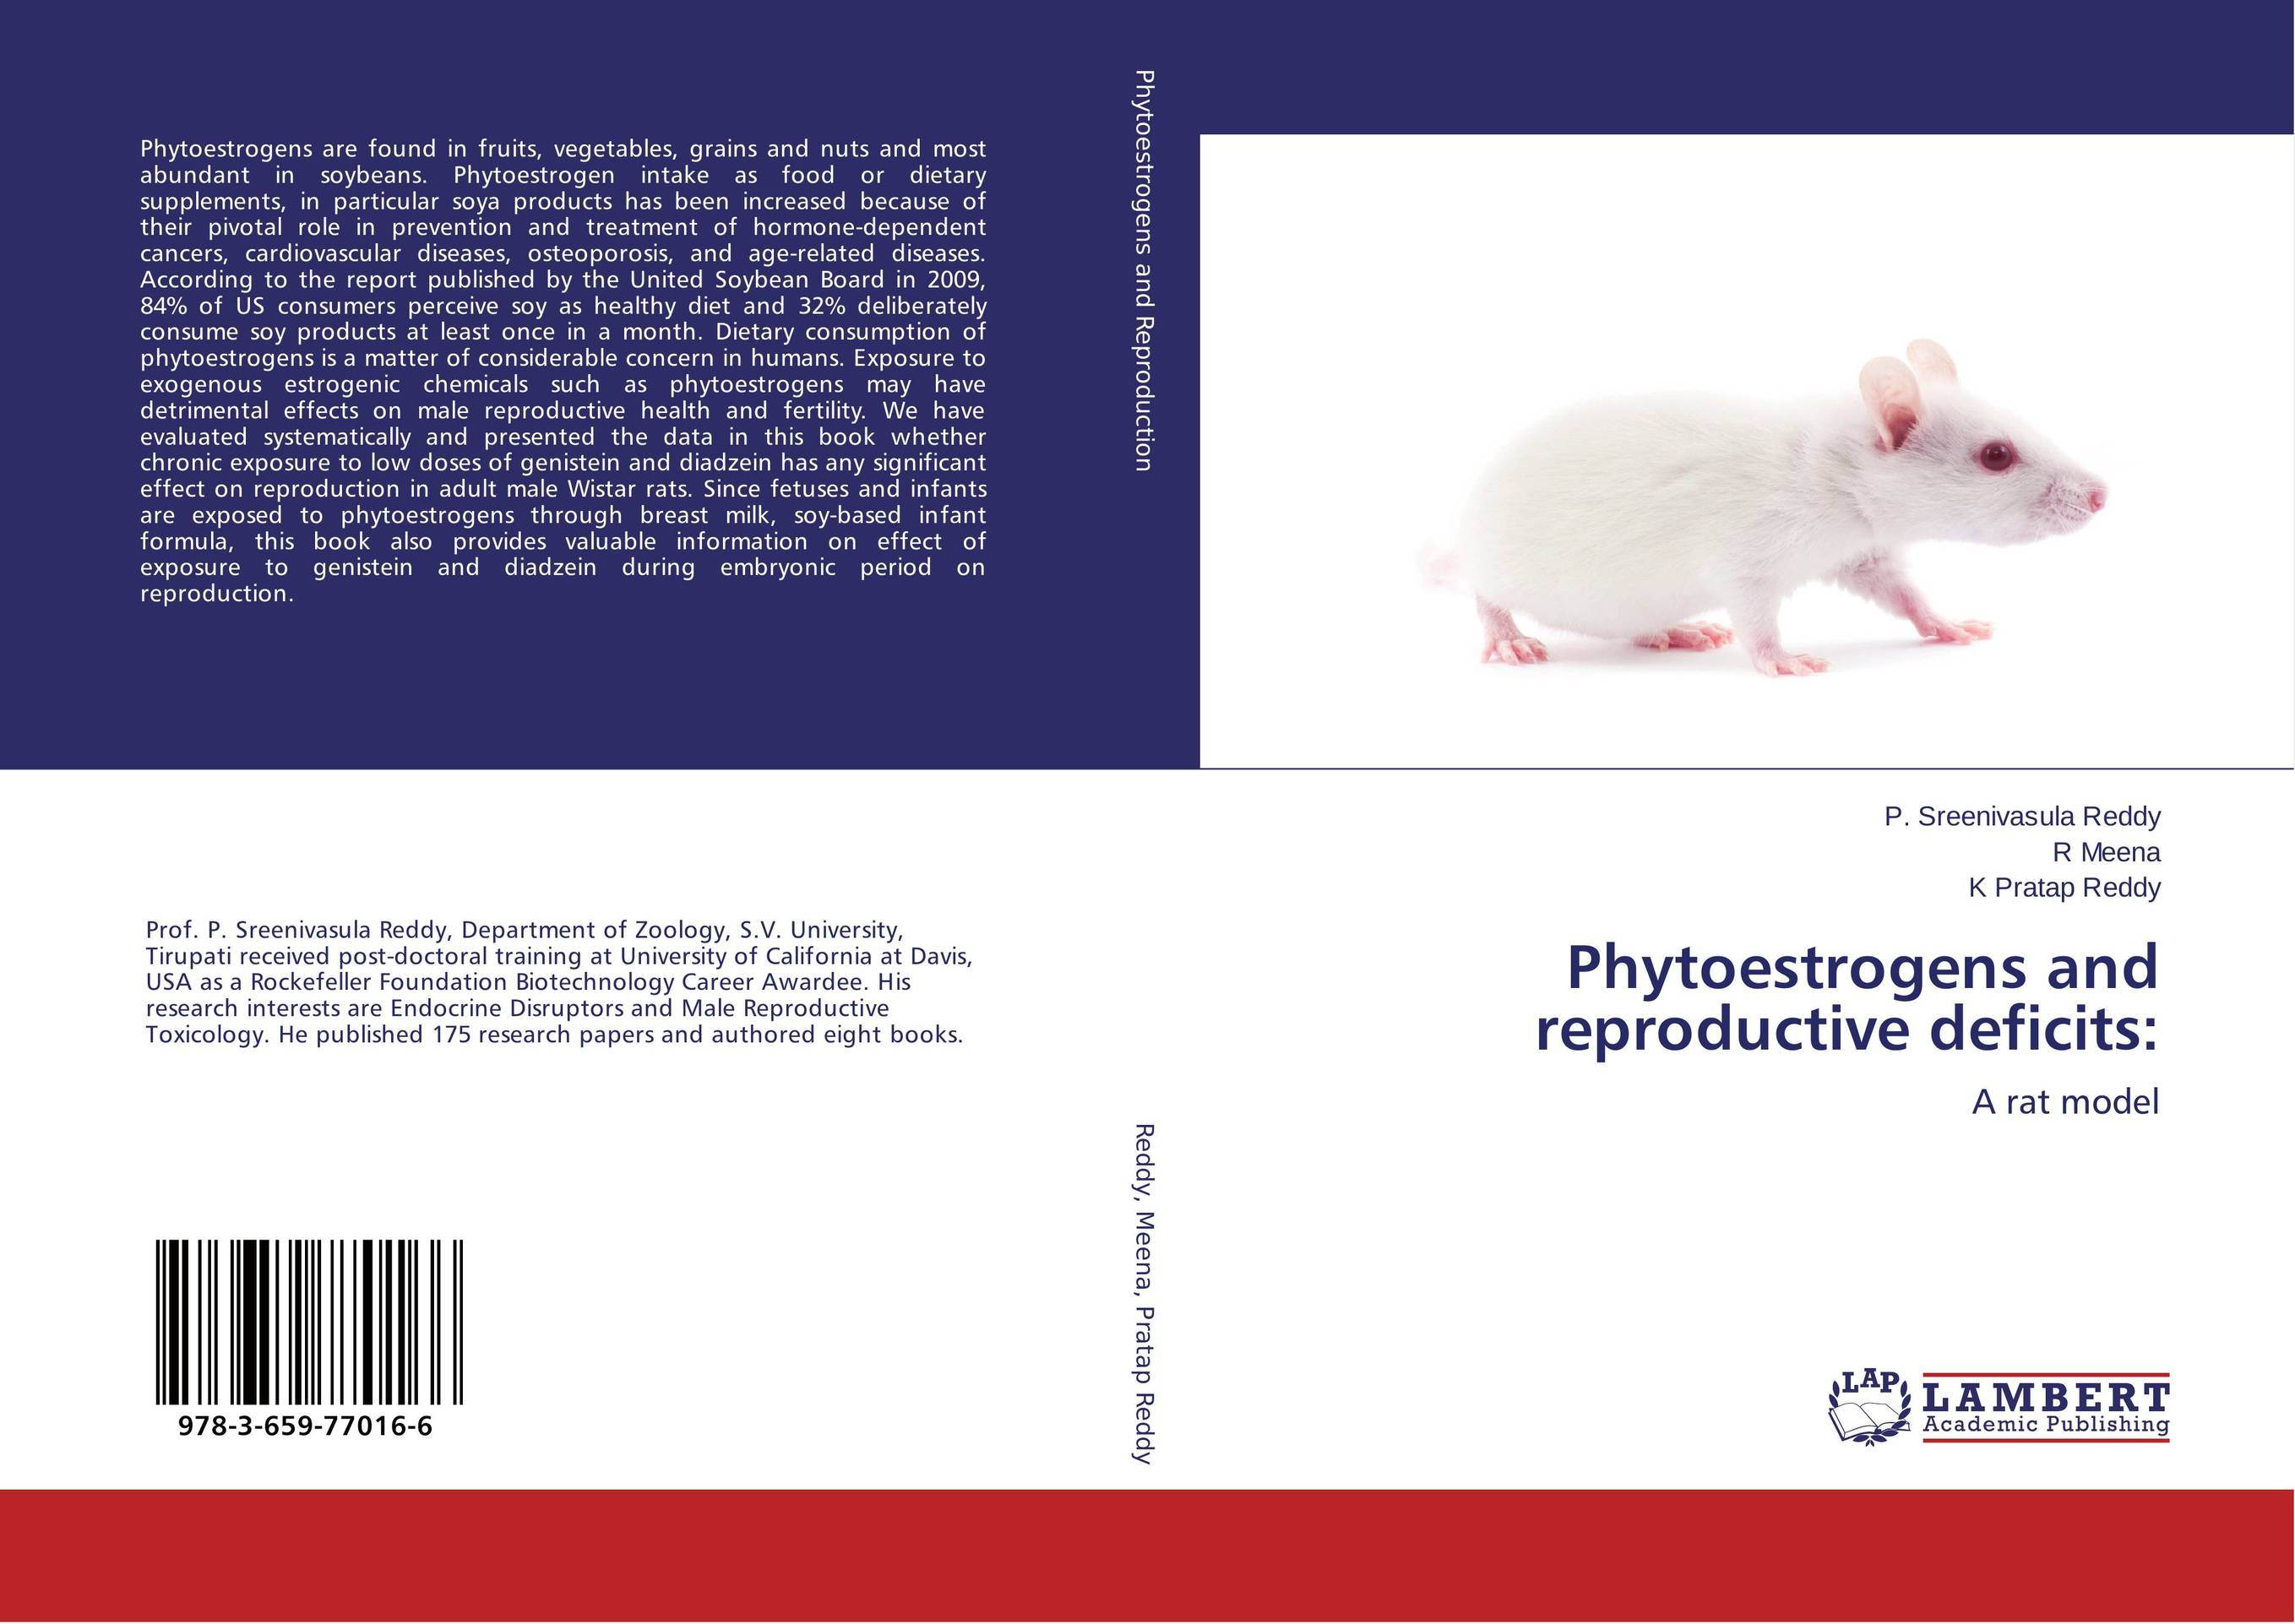 Phytoestrogens and reproductive deficits: phytoestrogens and reproductive deficits